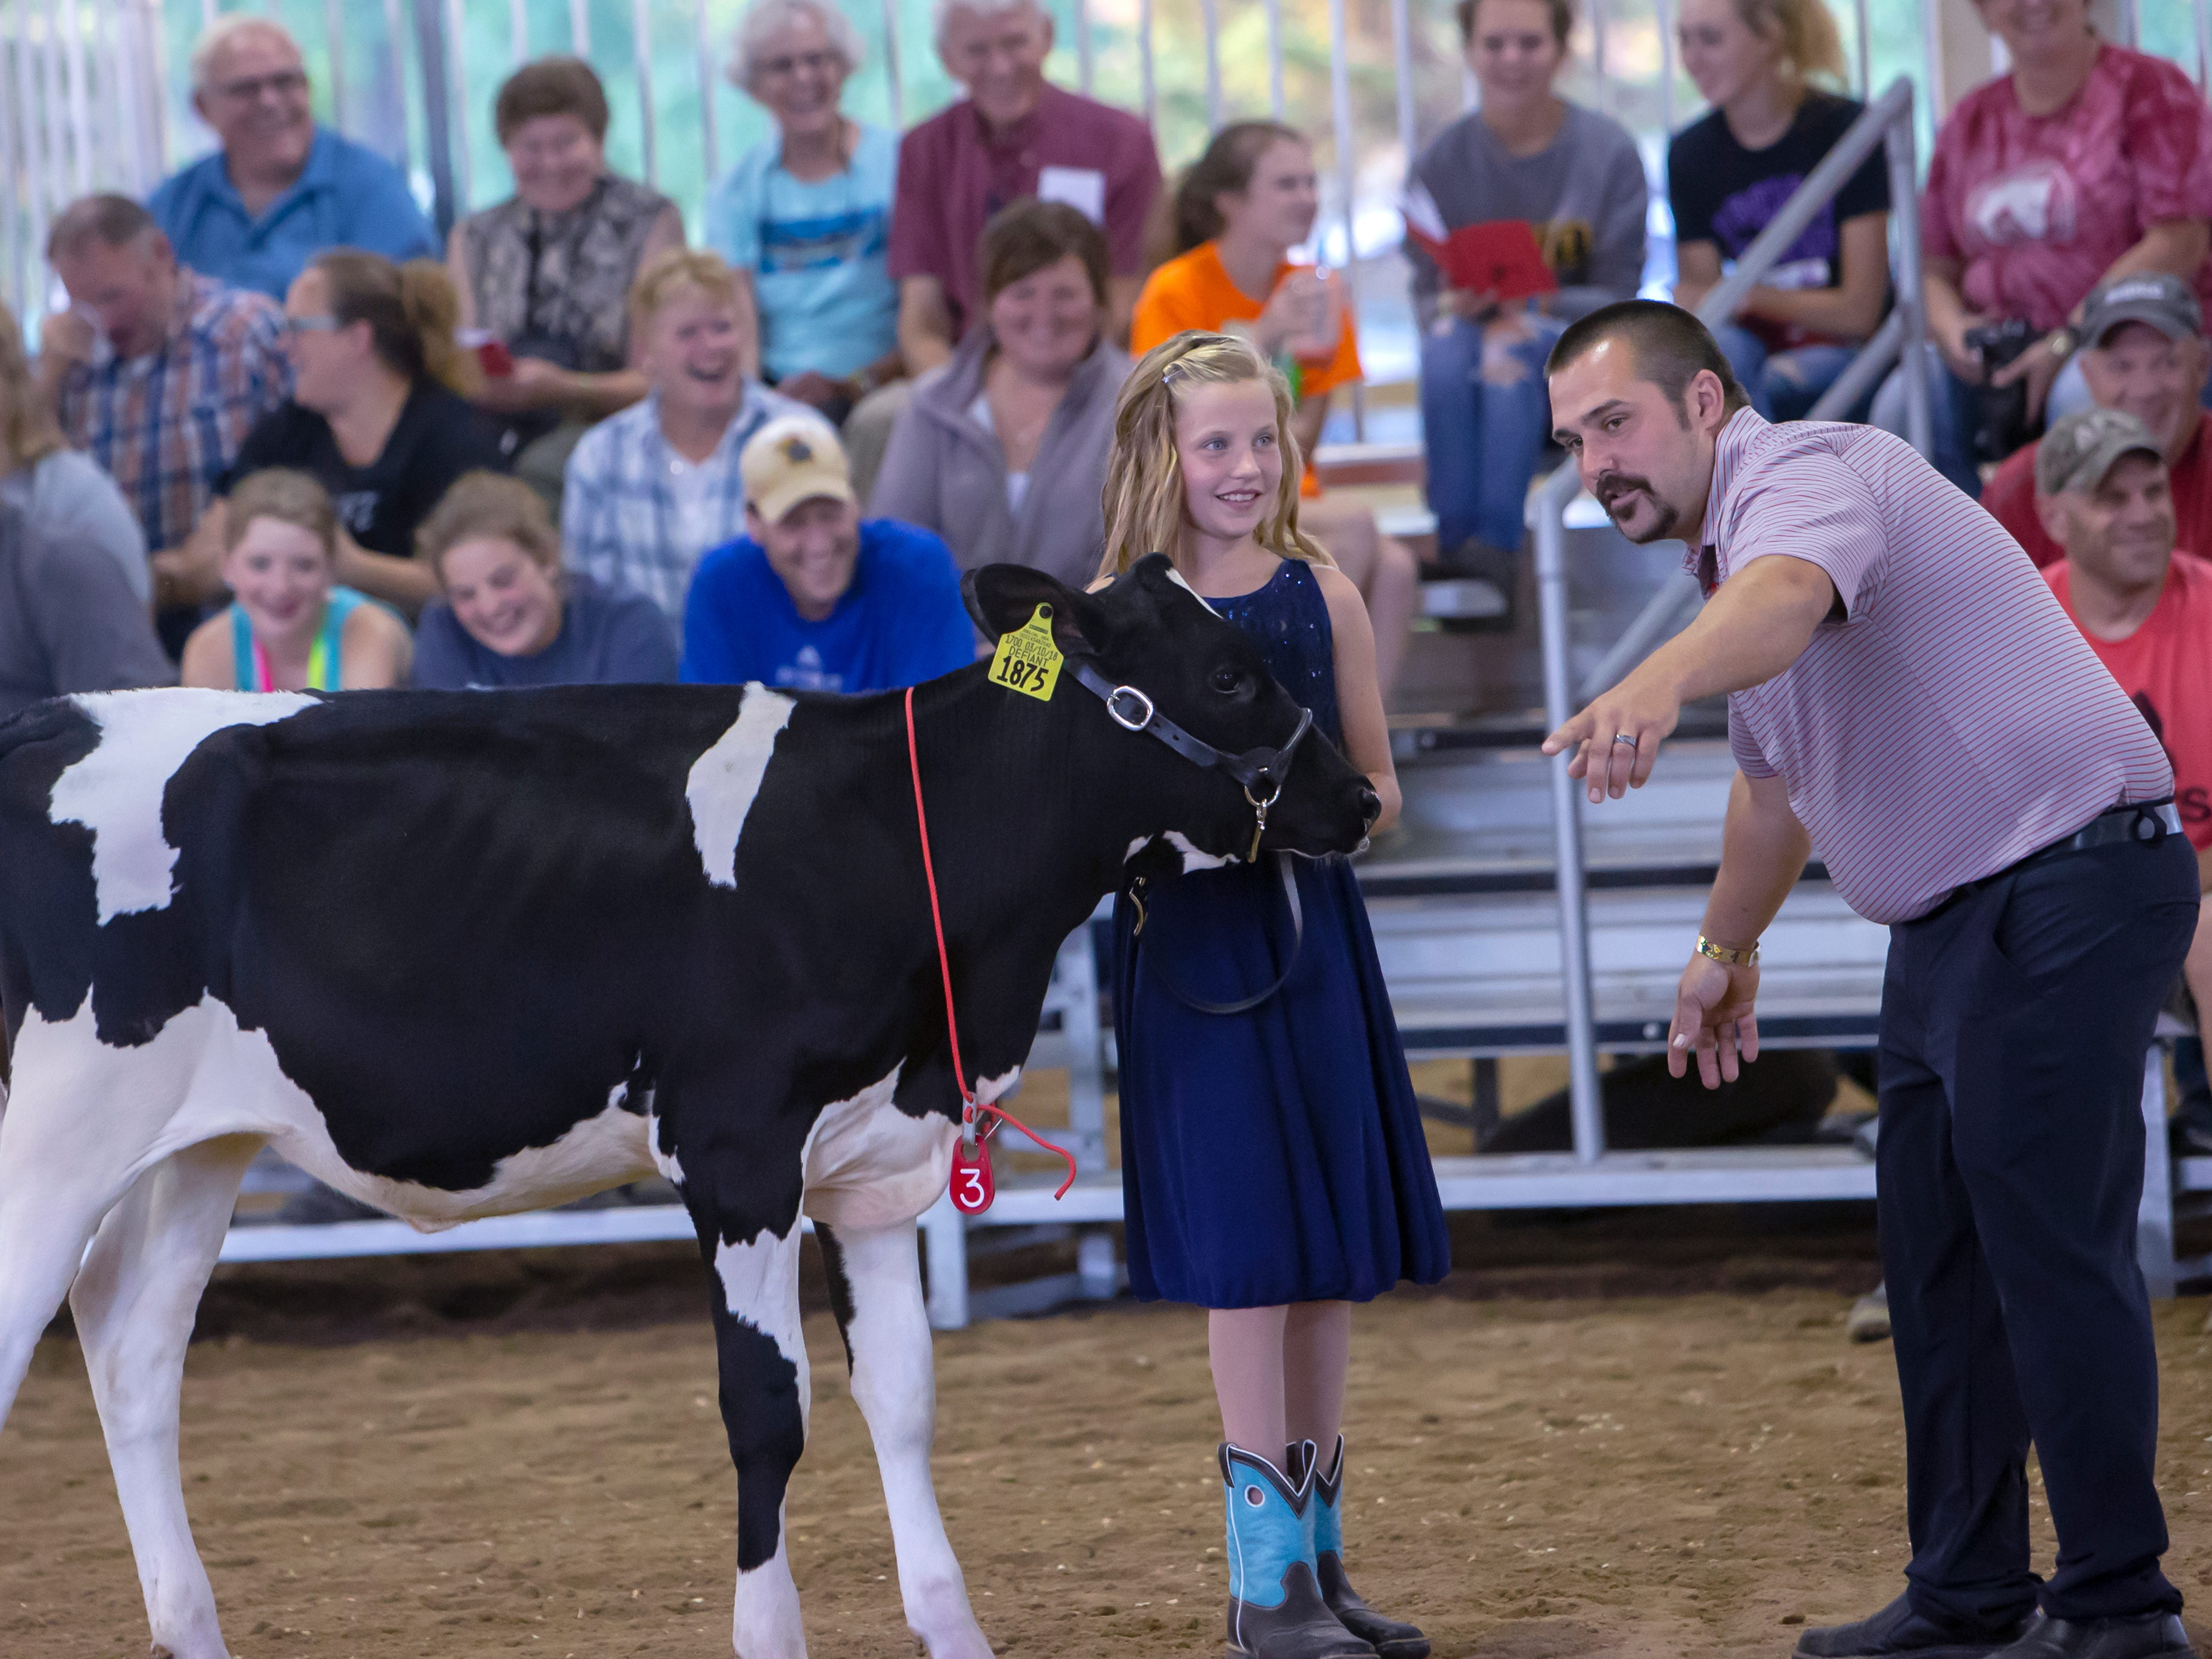 Kids show their cows in the Futurity Dairy Show during the Winnebago County Fair on Friday, Aug. 3, 2018.